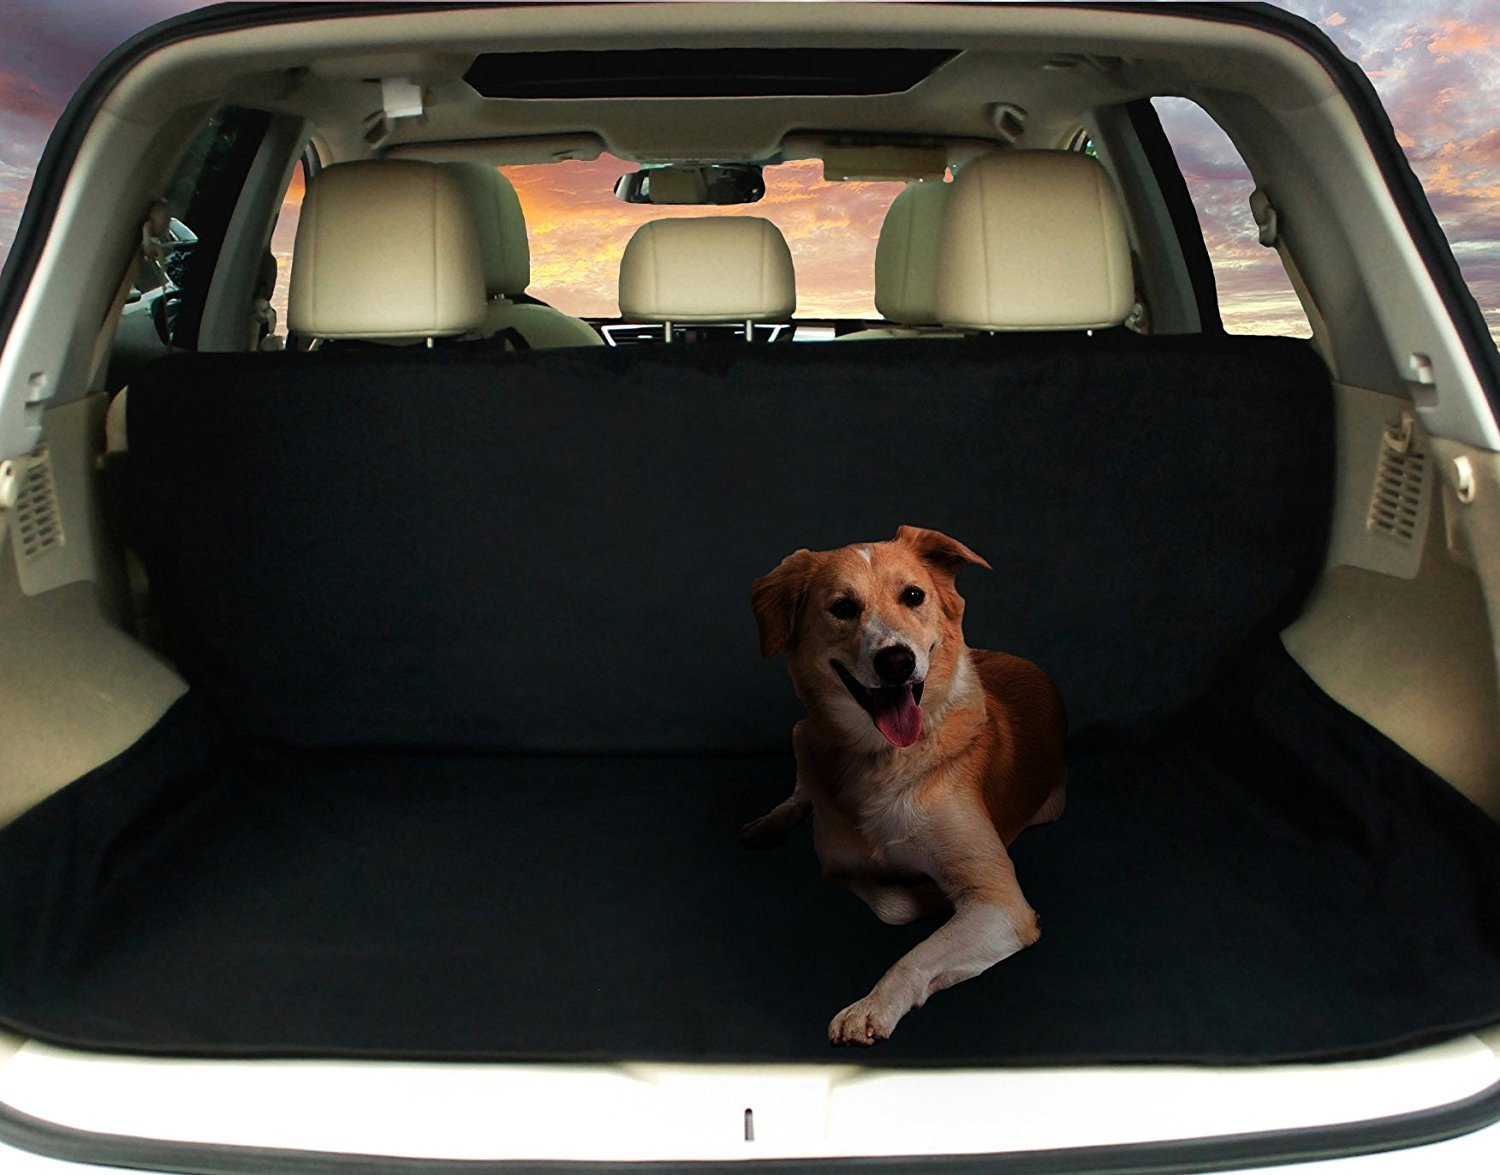 Deluxe SUV Cargo Liner For Pets – Waterproof, Nonslip, Machine Washable Car Seat Cover for Pets, Lifetime Warranty